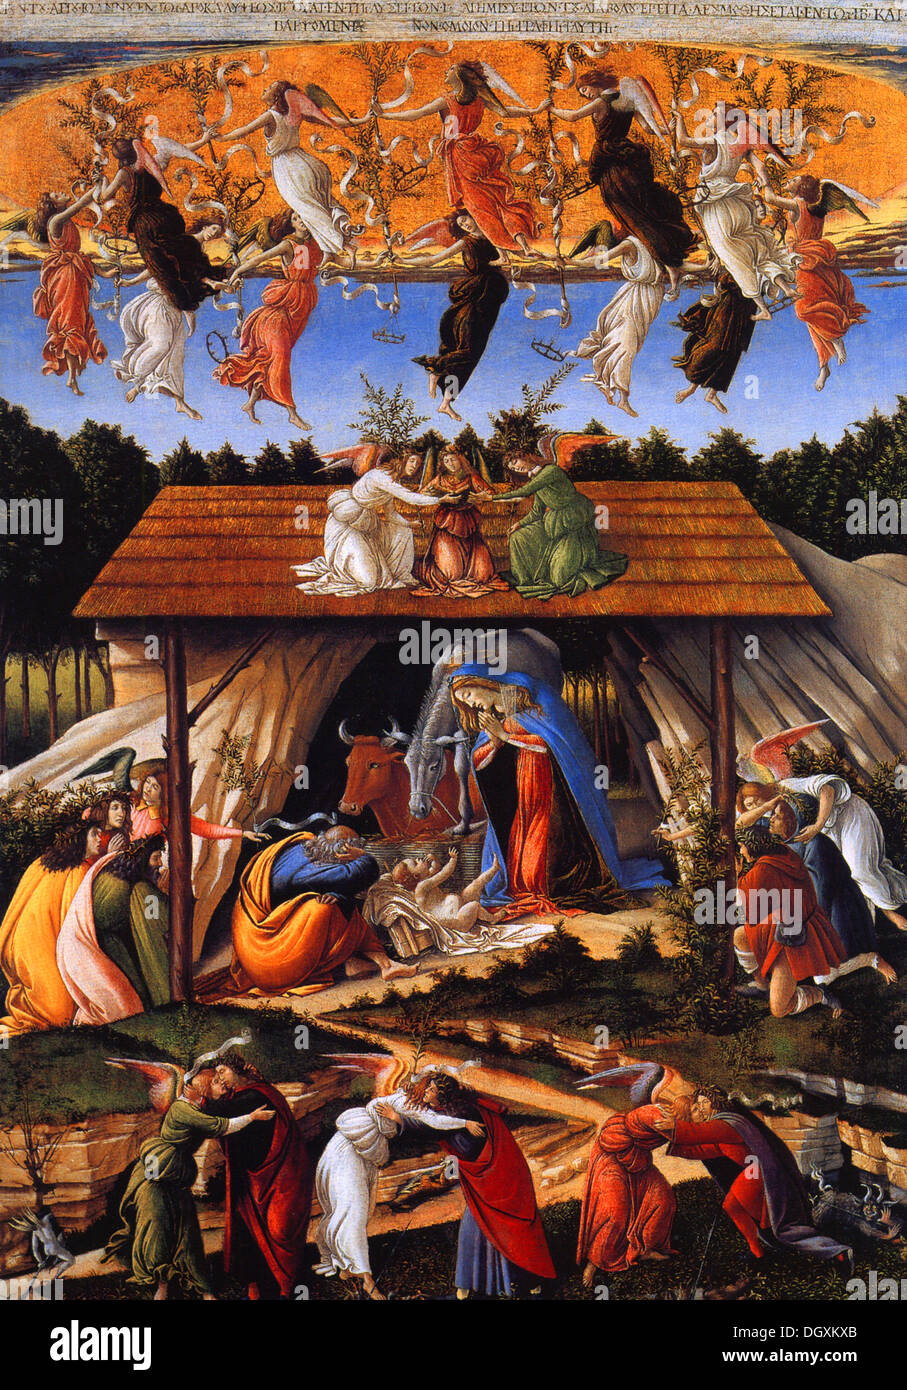 The Mystical Nativity  - by Sandro Botticelli, 1501 - Editorial use only. - Stock Image